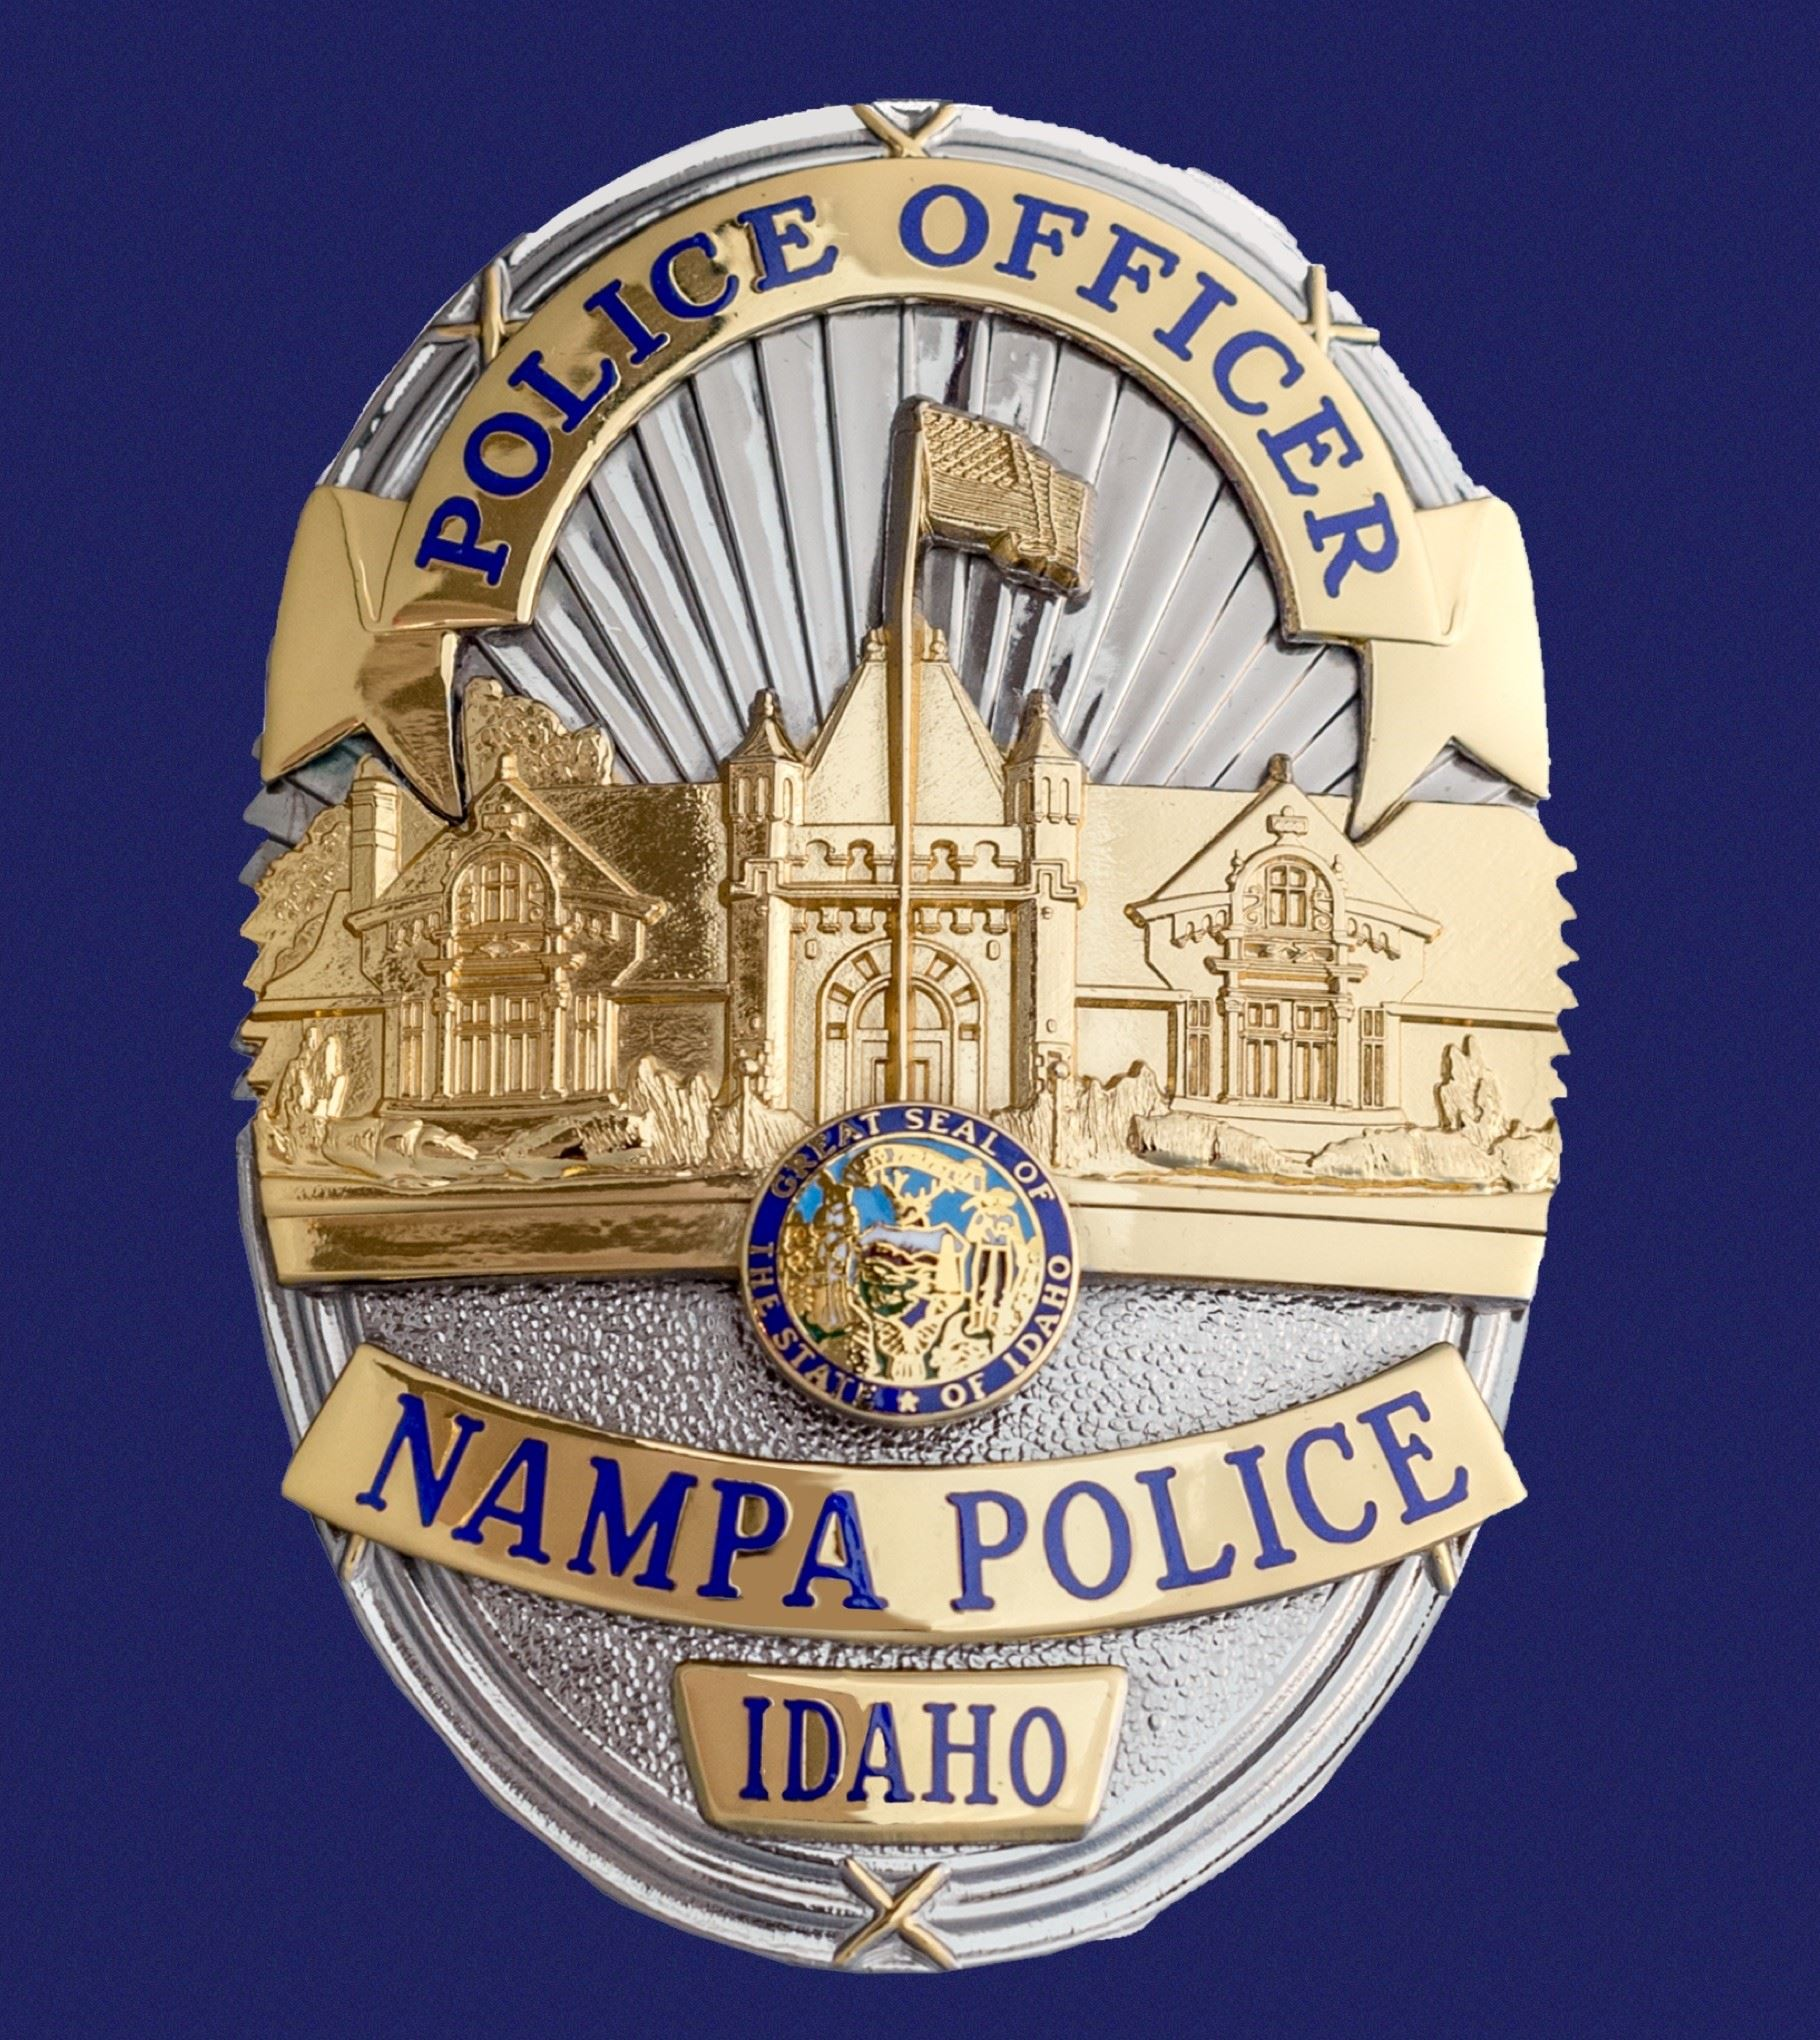 Nampa police badge with blue background